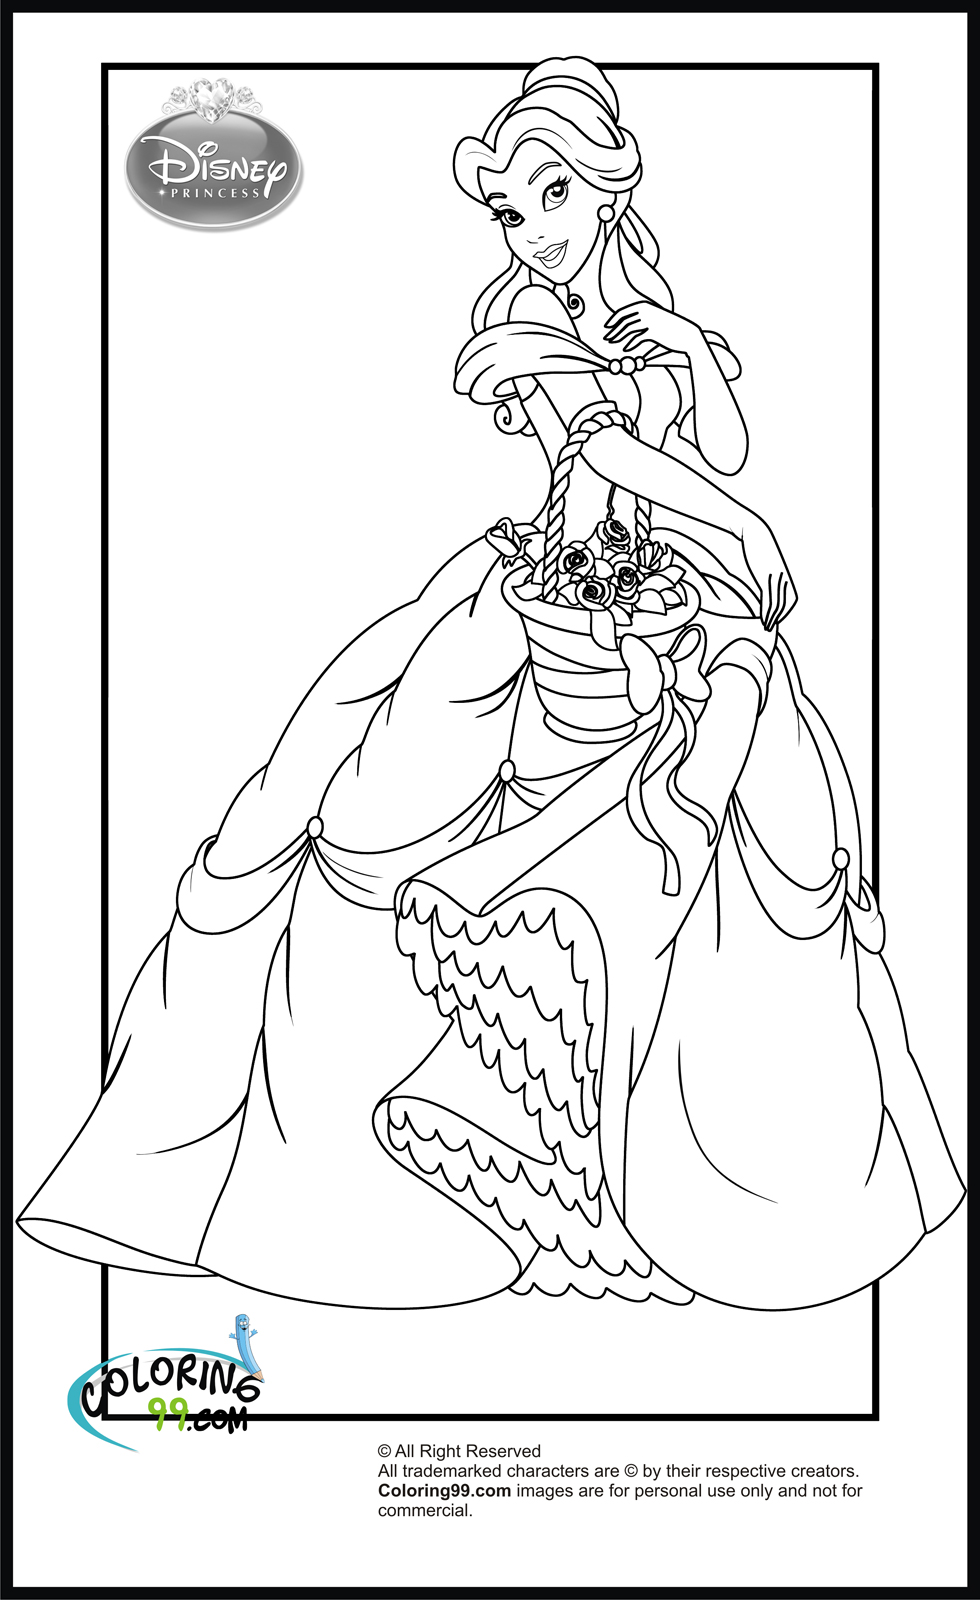 Disney Princess Coloring Pages | Team colors | free colouring pages disney princesses